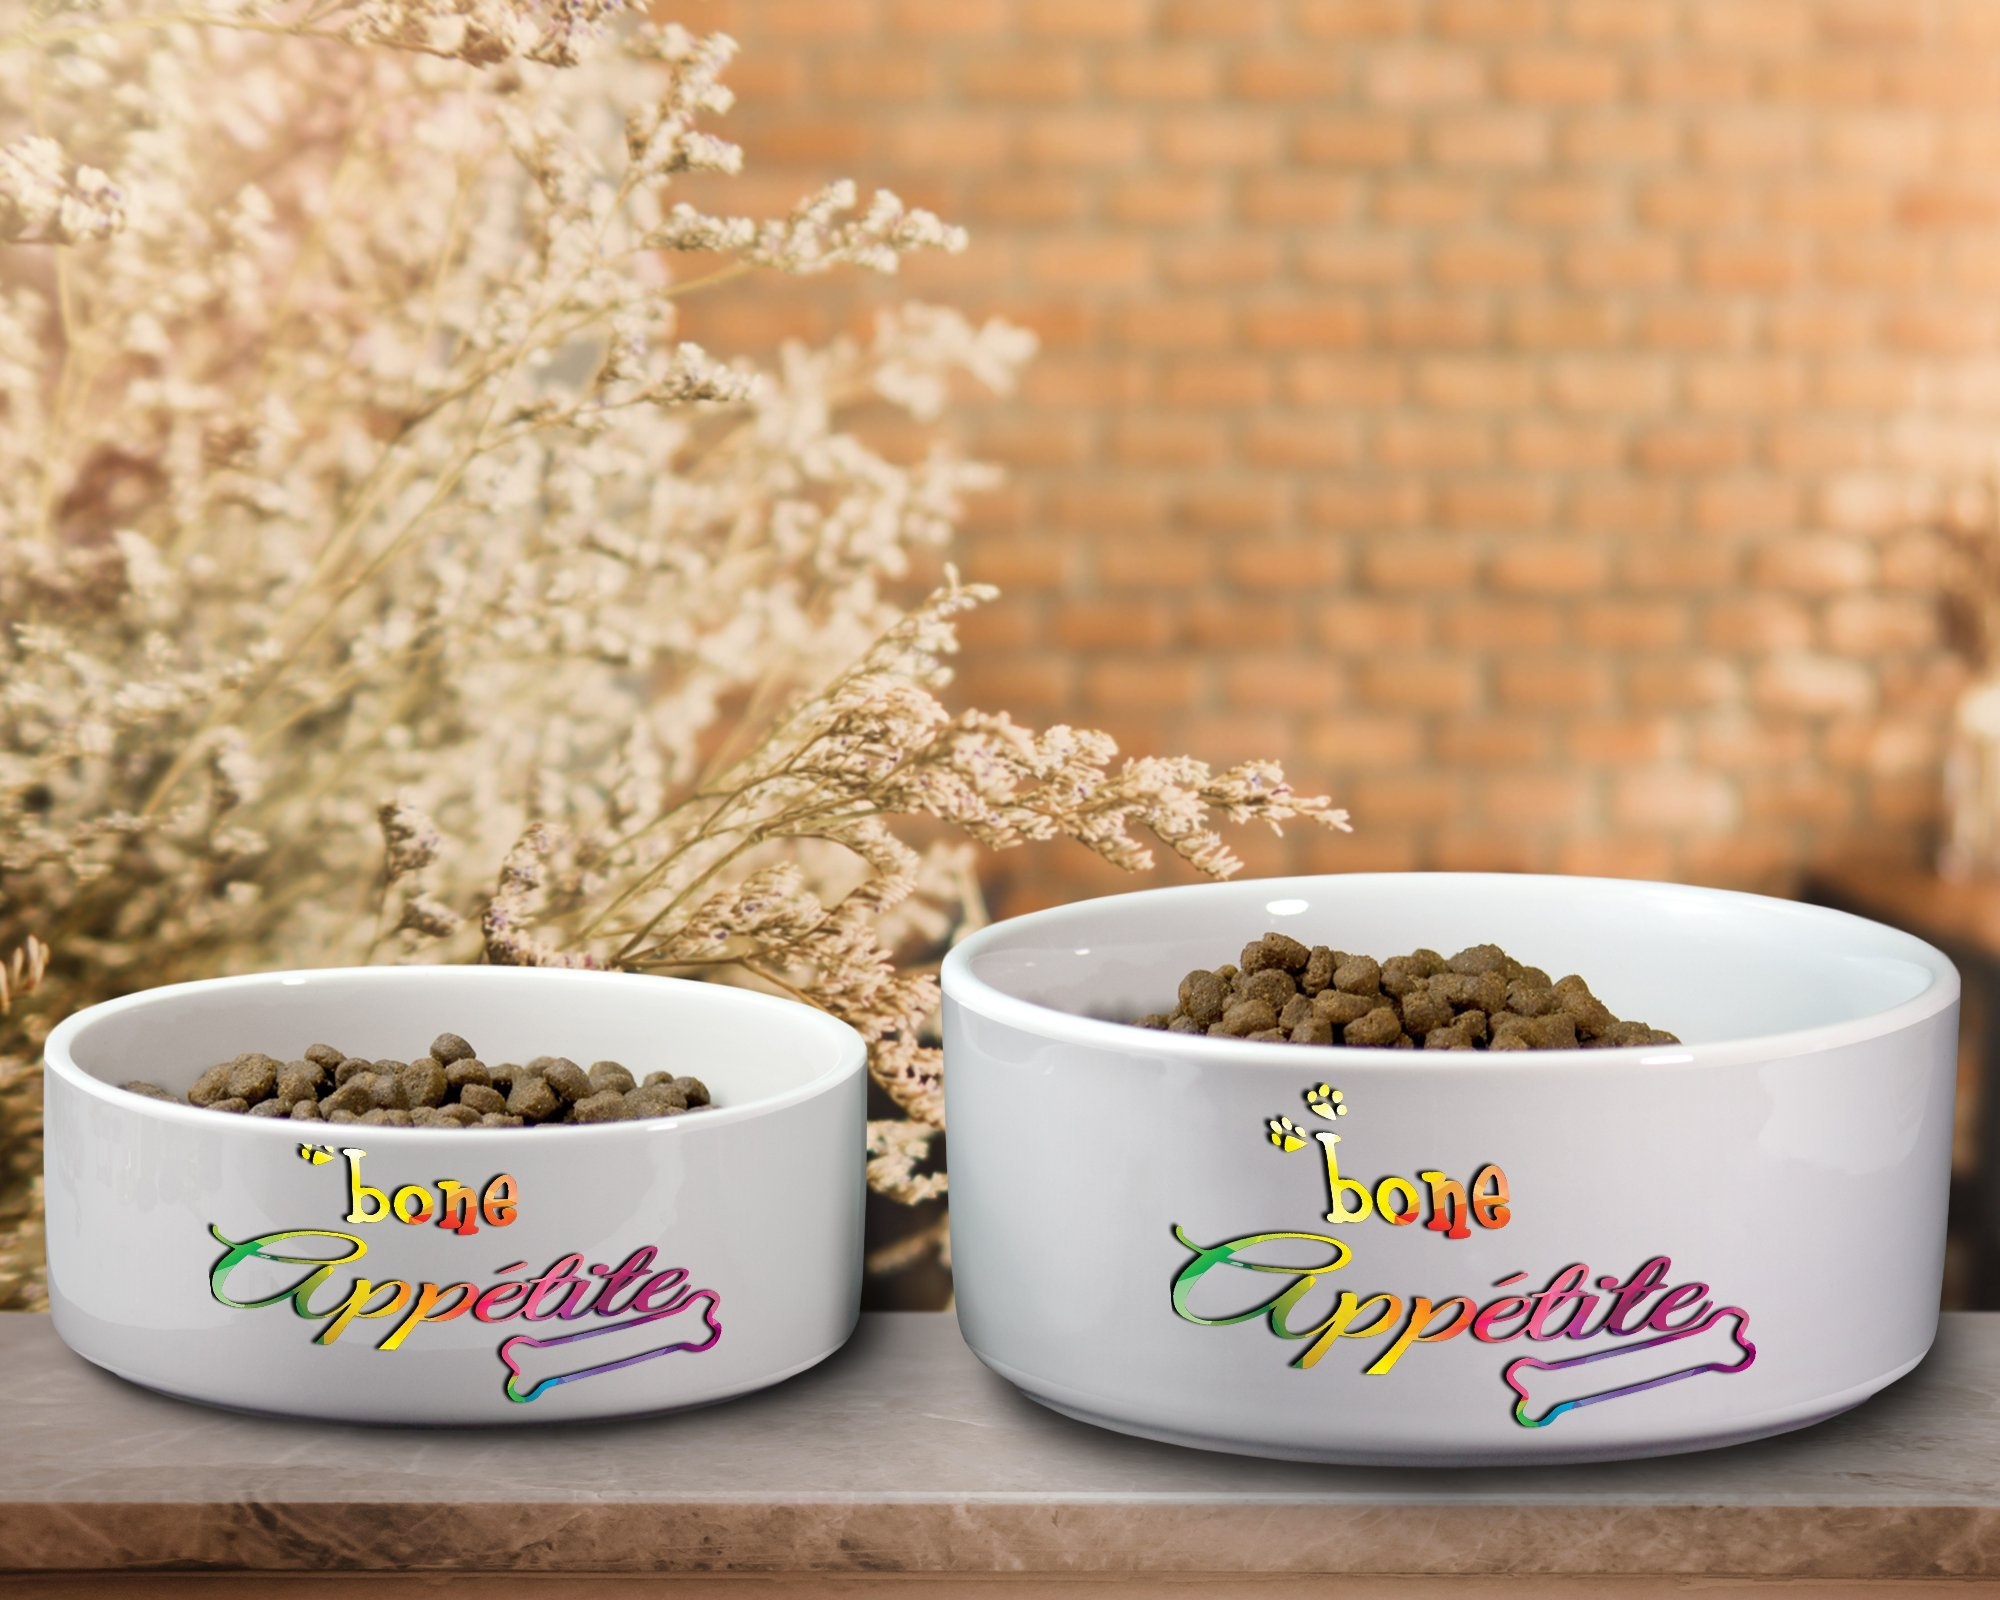 Bone Appetite Colorful Ceramic Dog Water or Food Bowl - Small or Large Available